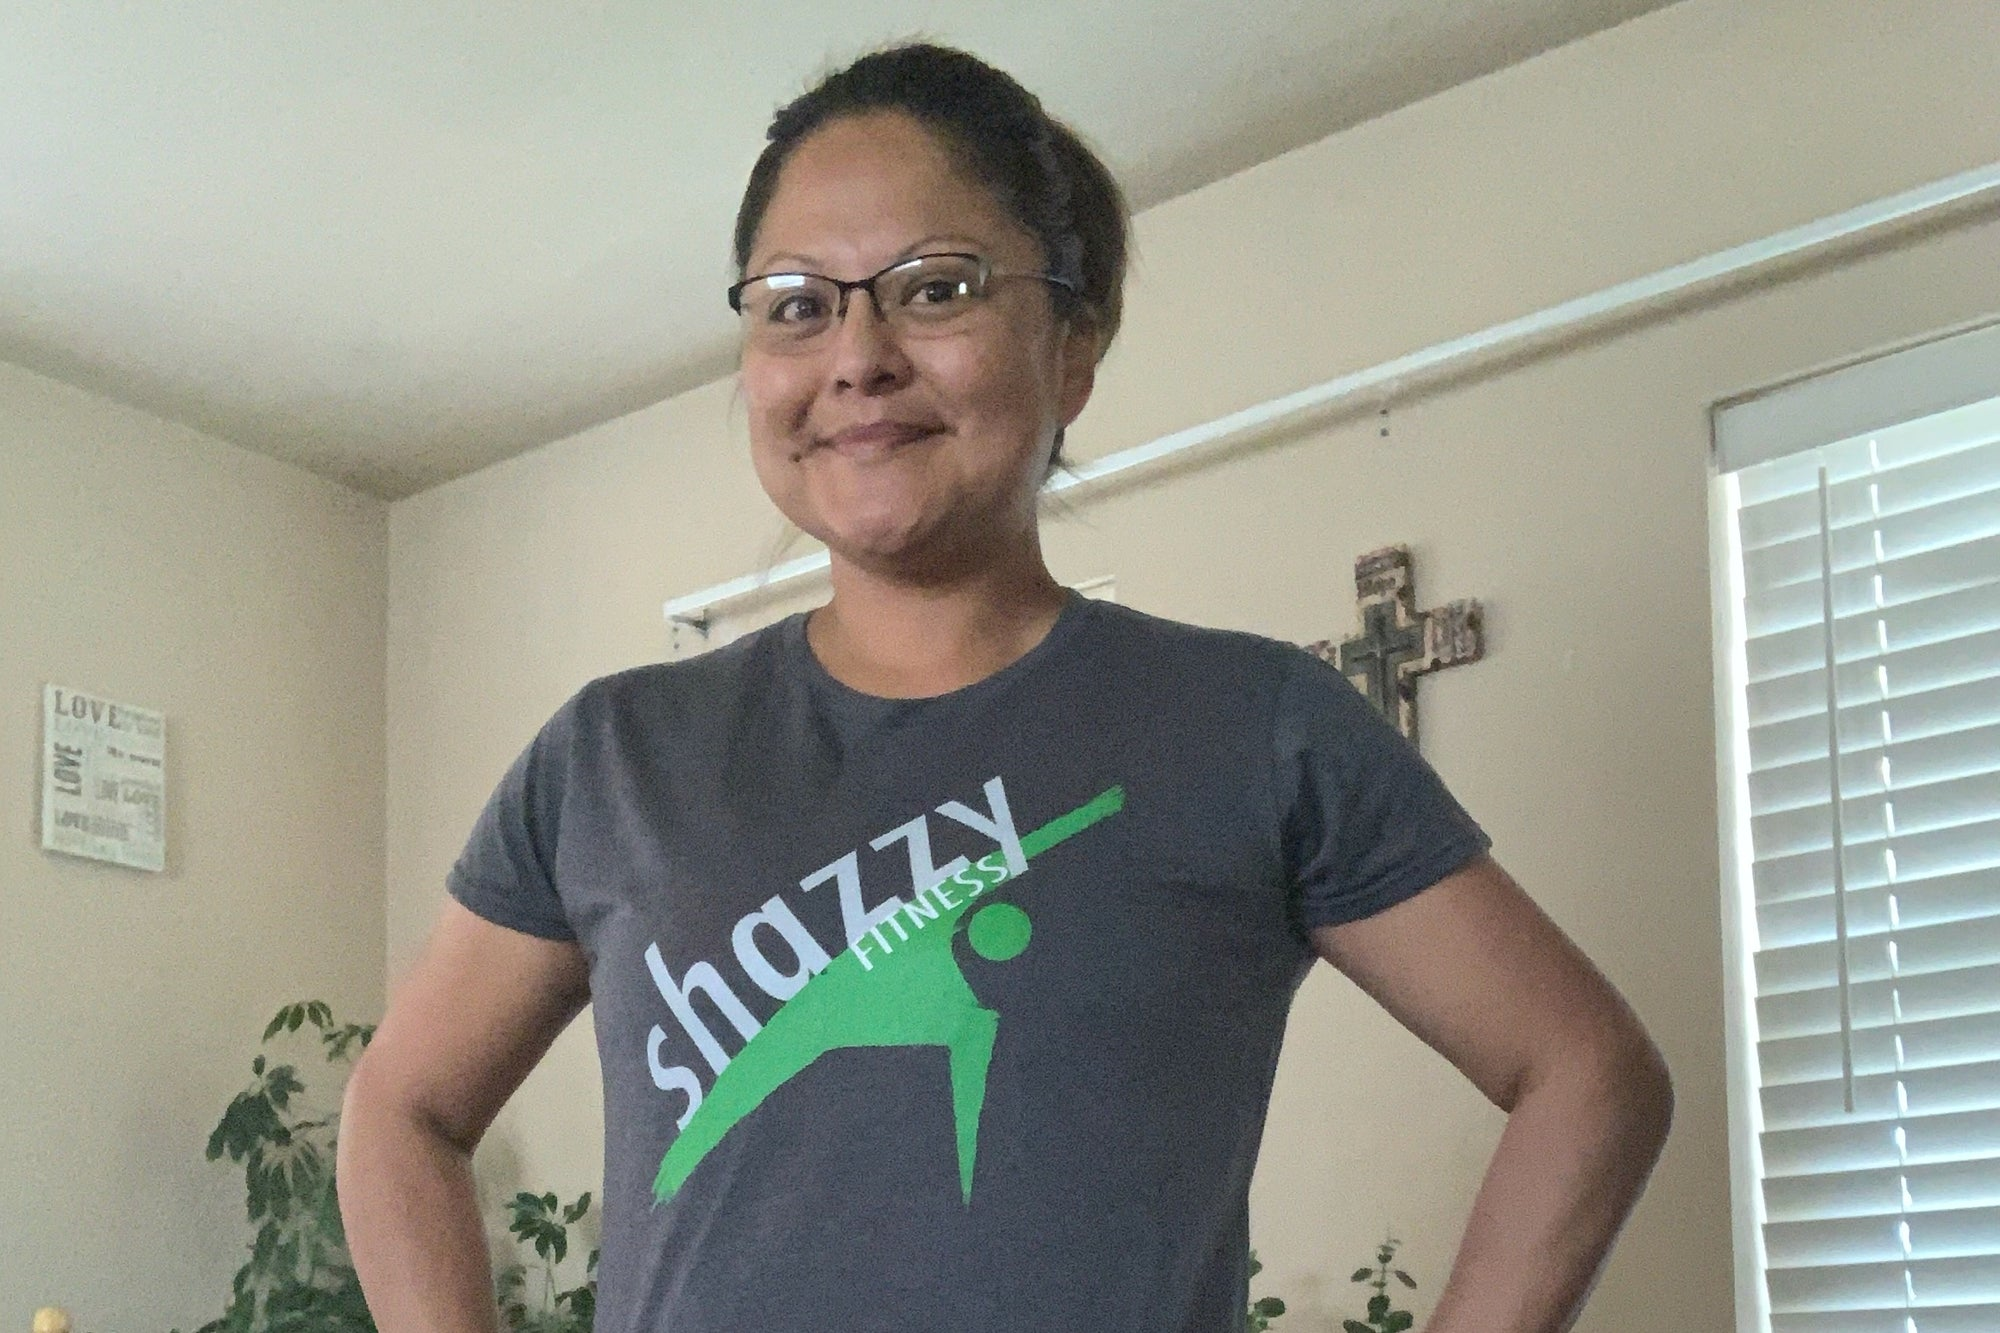 Exercise to Uplifting Encouraging Music with Shazzy Fitness: Meet Sausha Nells!